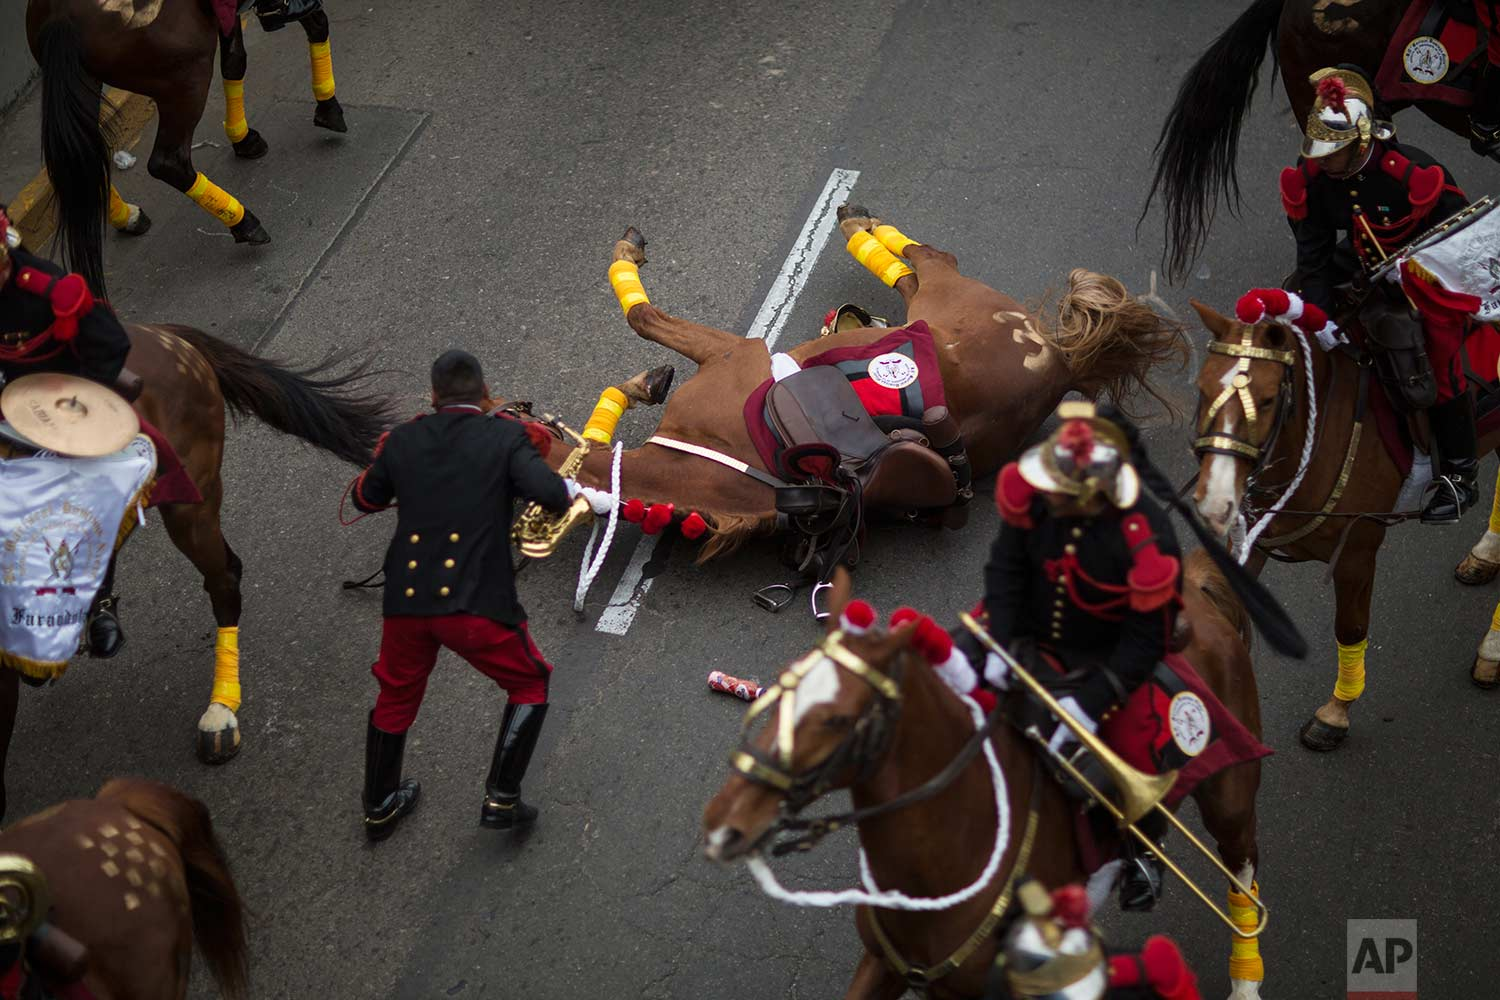 A member of the traditional cavalry regiment known as the Husares de Junin tends to his horse who inexplicably fell during a military parade that was part of the Independence Day celebrations, in Lima, Peru, Saturday, July 29, 2017. (AP Photo/Rodrigo Abd)